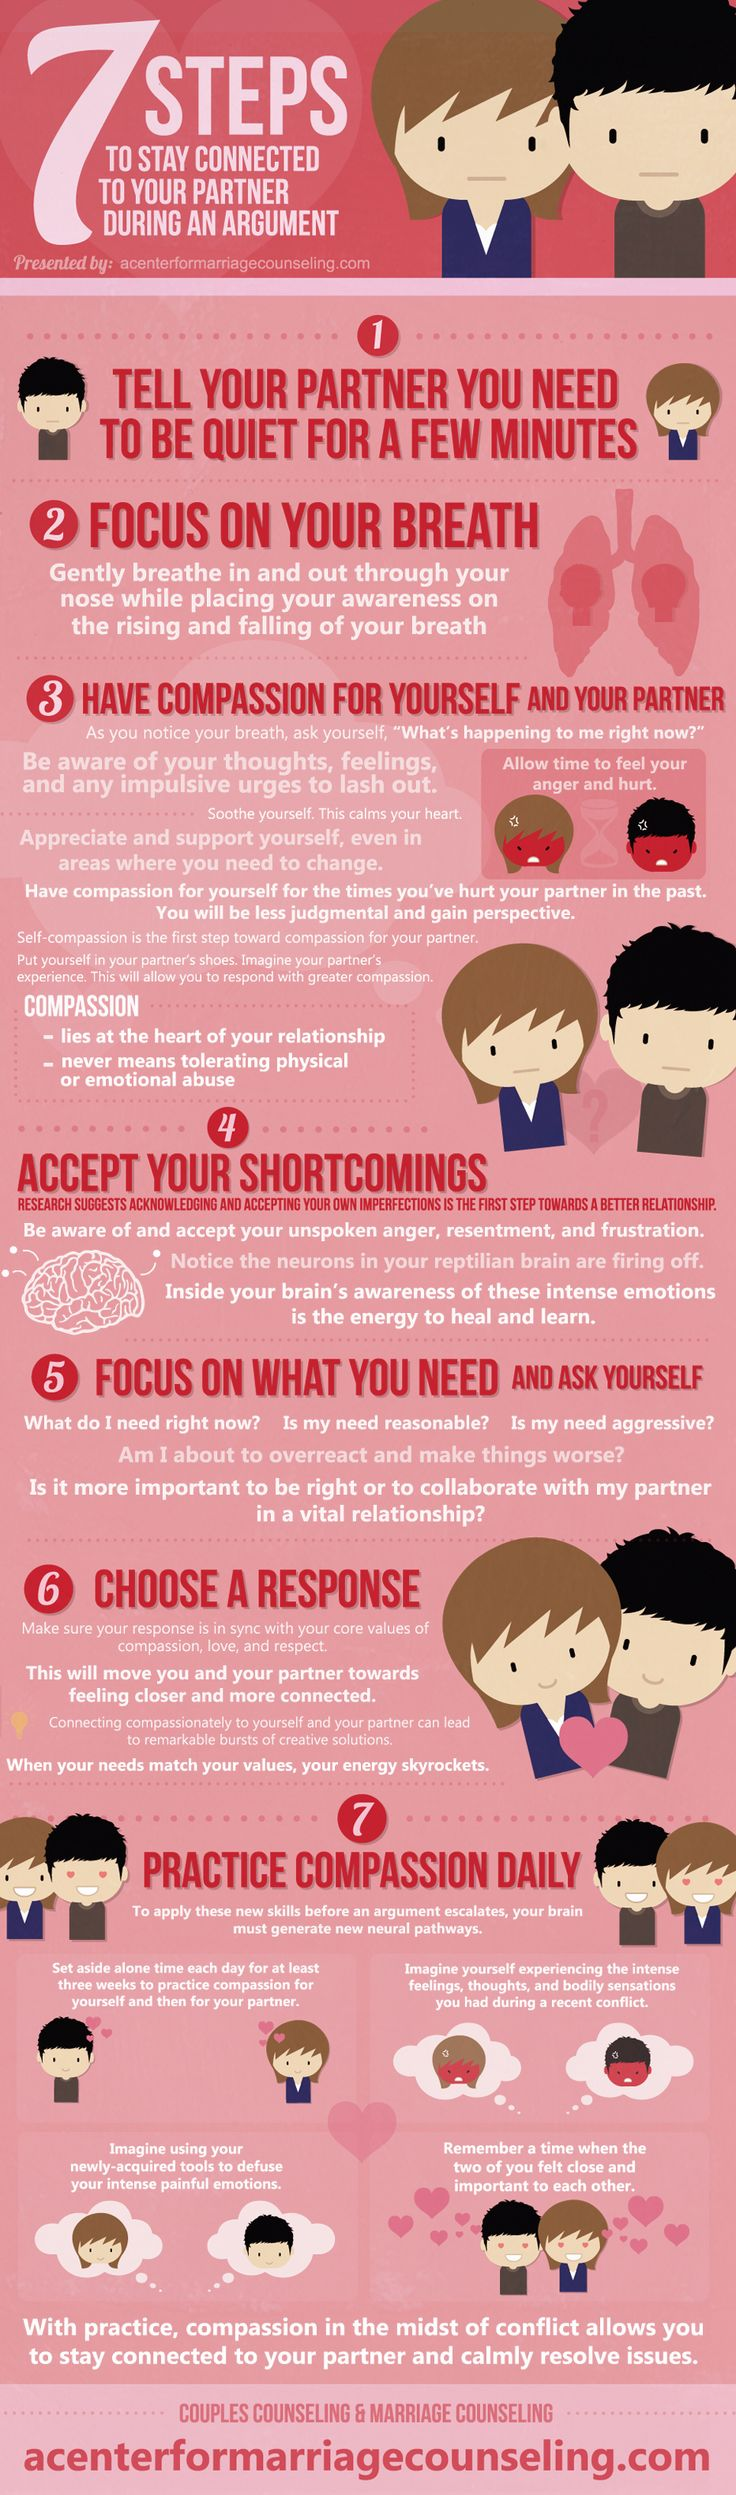 7 Steps To Stay Connected To Your Partner During an argument. For future reference... Haha